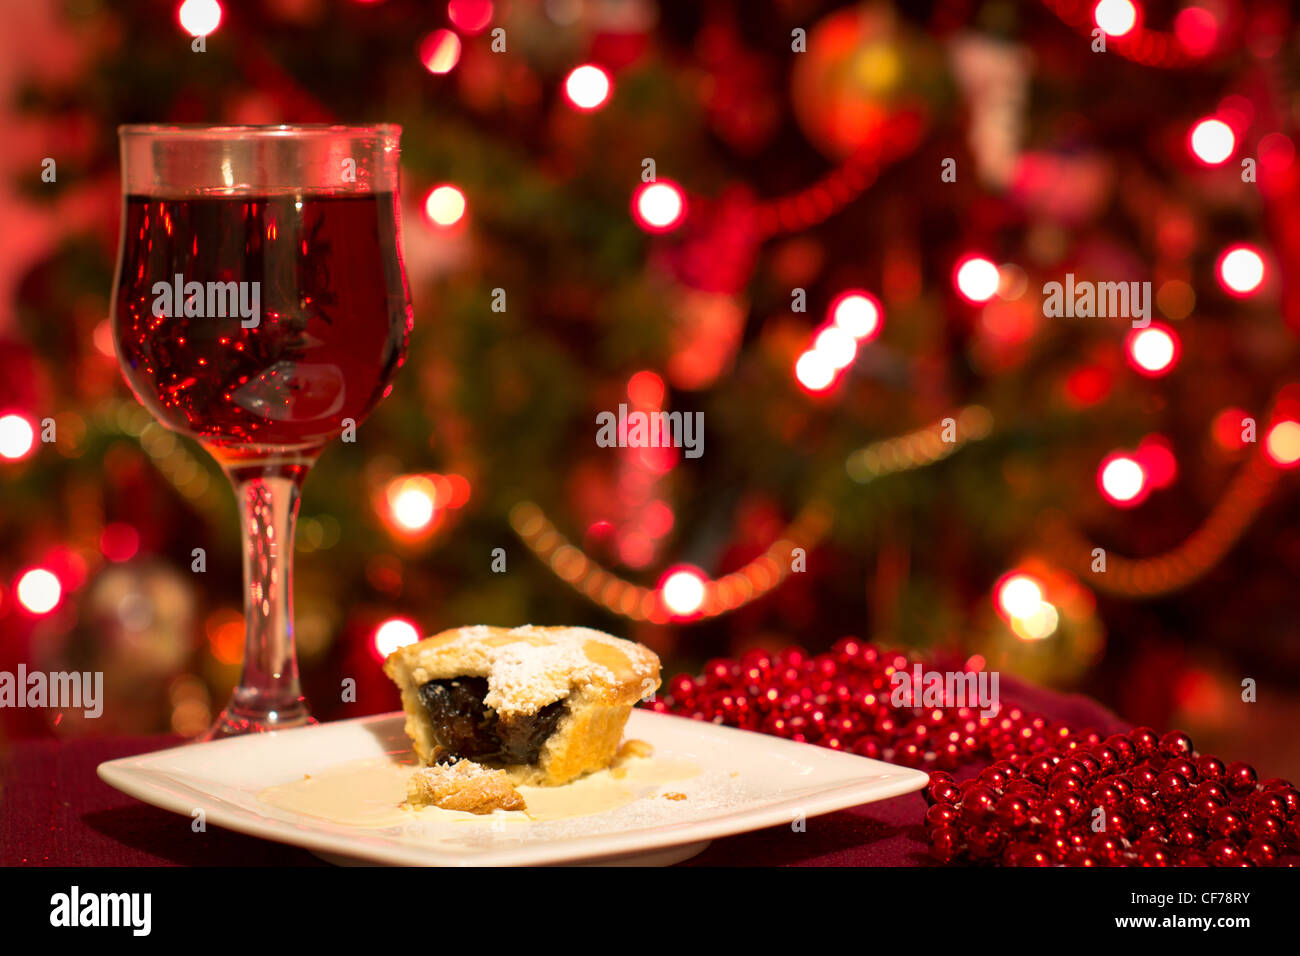 Picture with a classic Christmas feel to it. - Stock Image